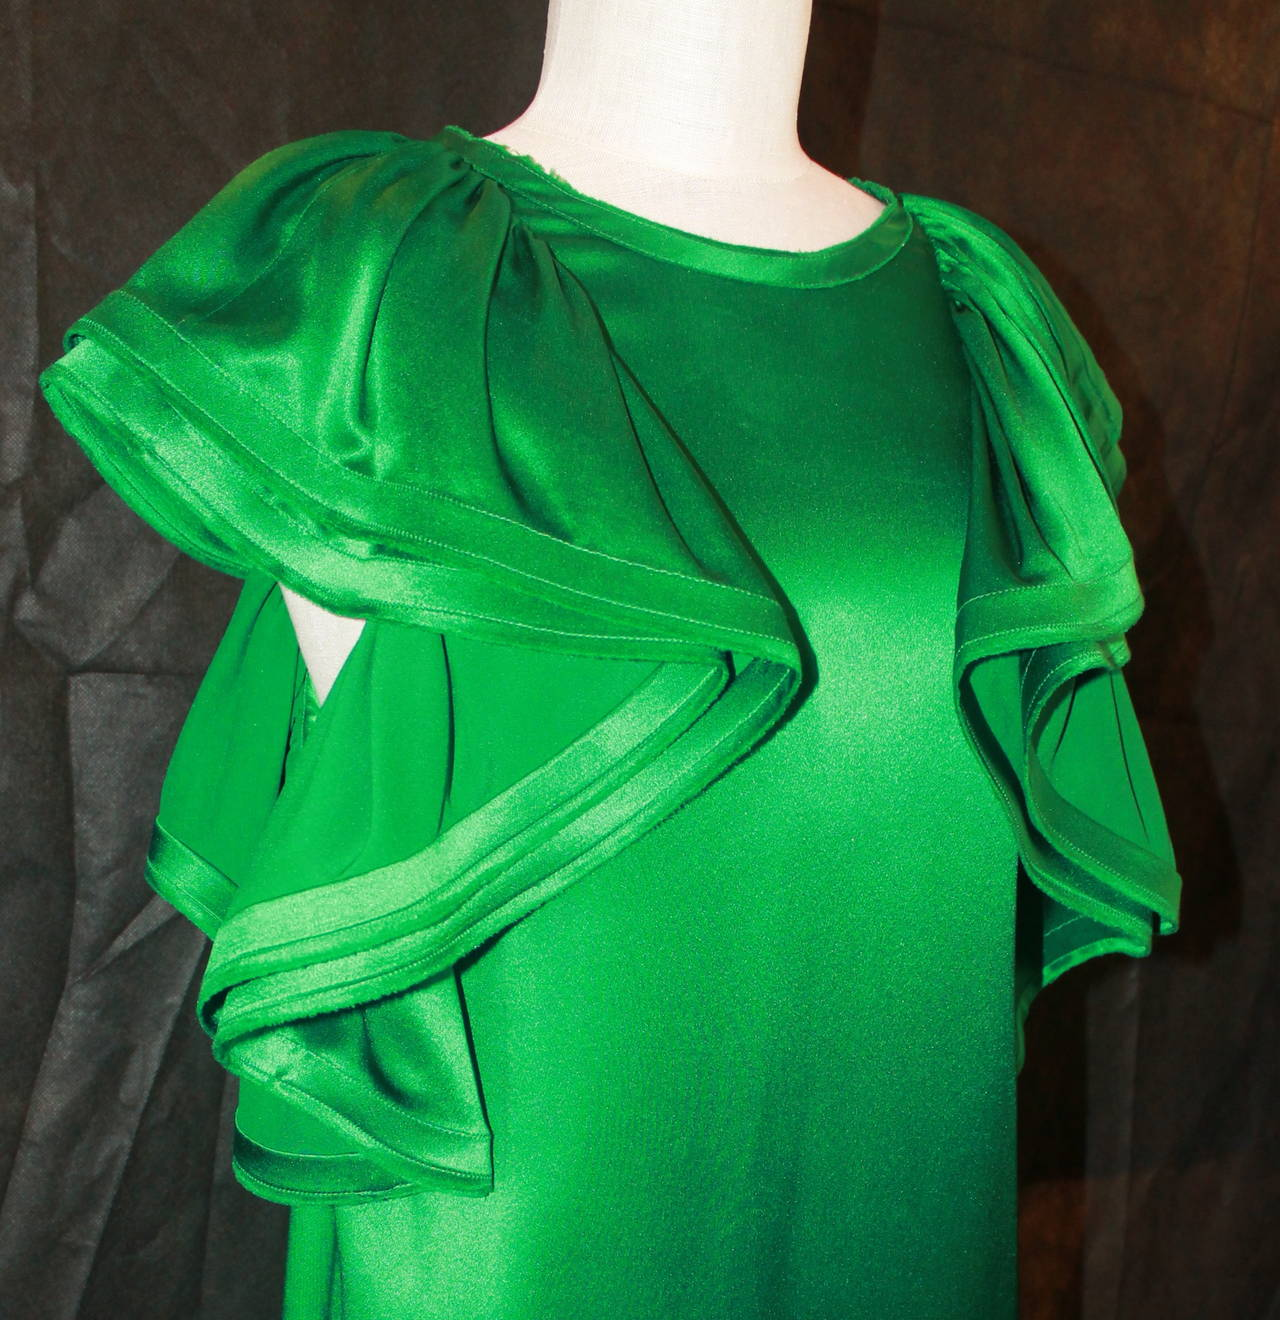 Lanvin Emerald Green Large Ruffle Sleeve Dress - 38. This dress is in excellent condition. 